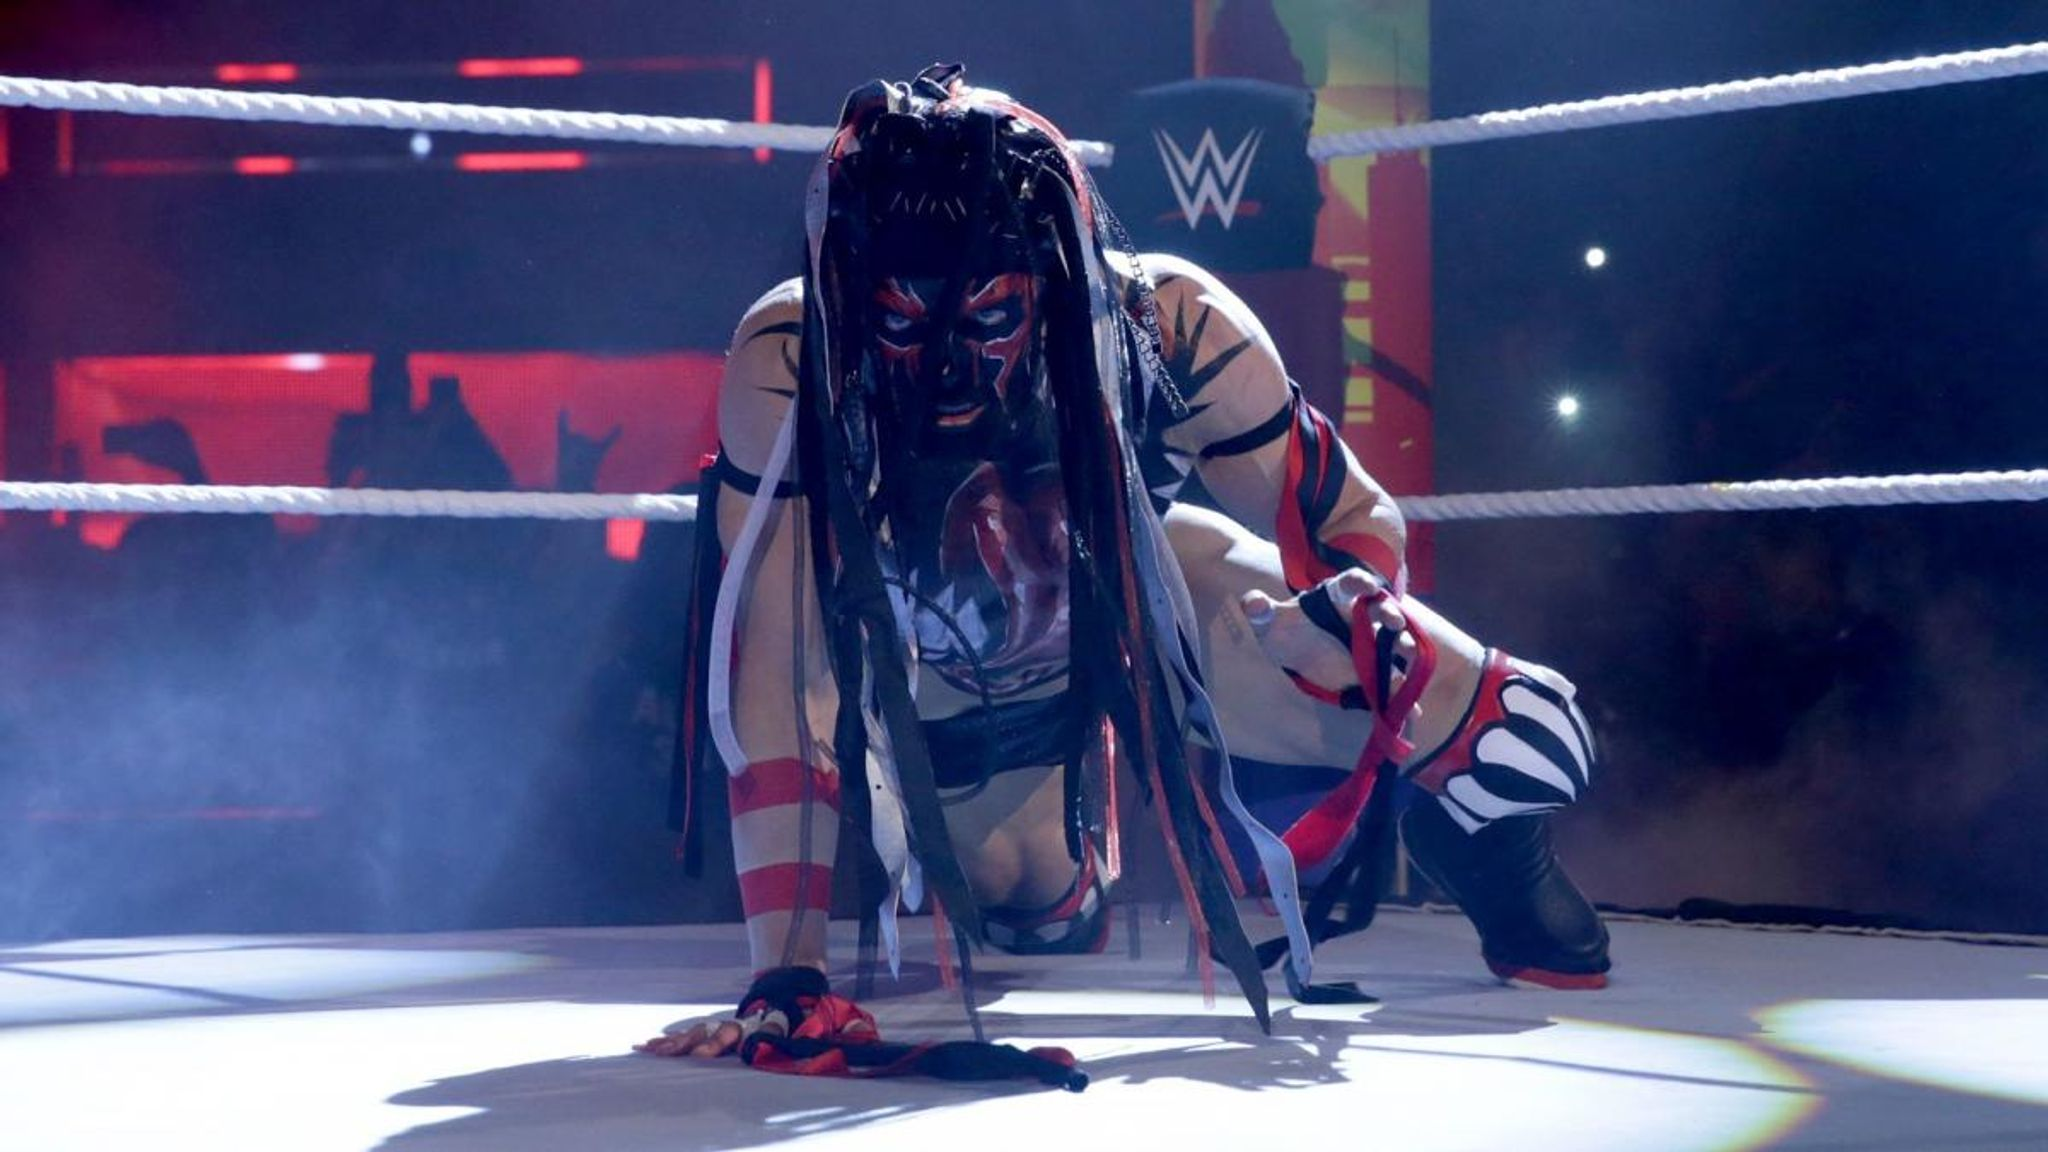 WWE Royal Rumble: Will we see Finn Balor bring out the Demon